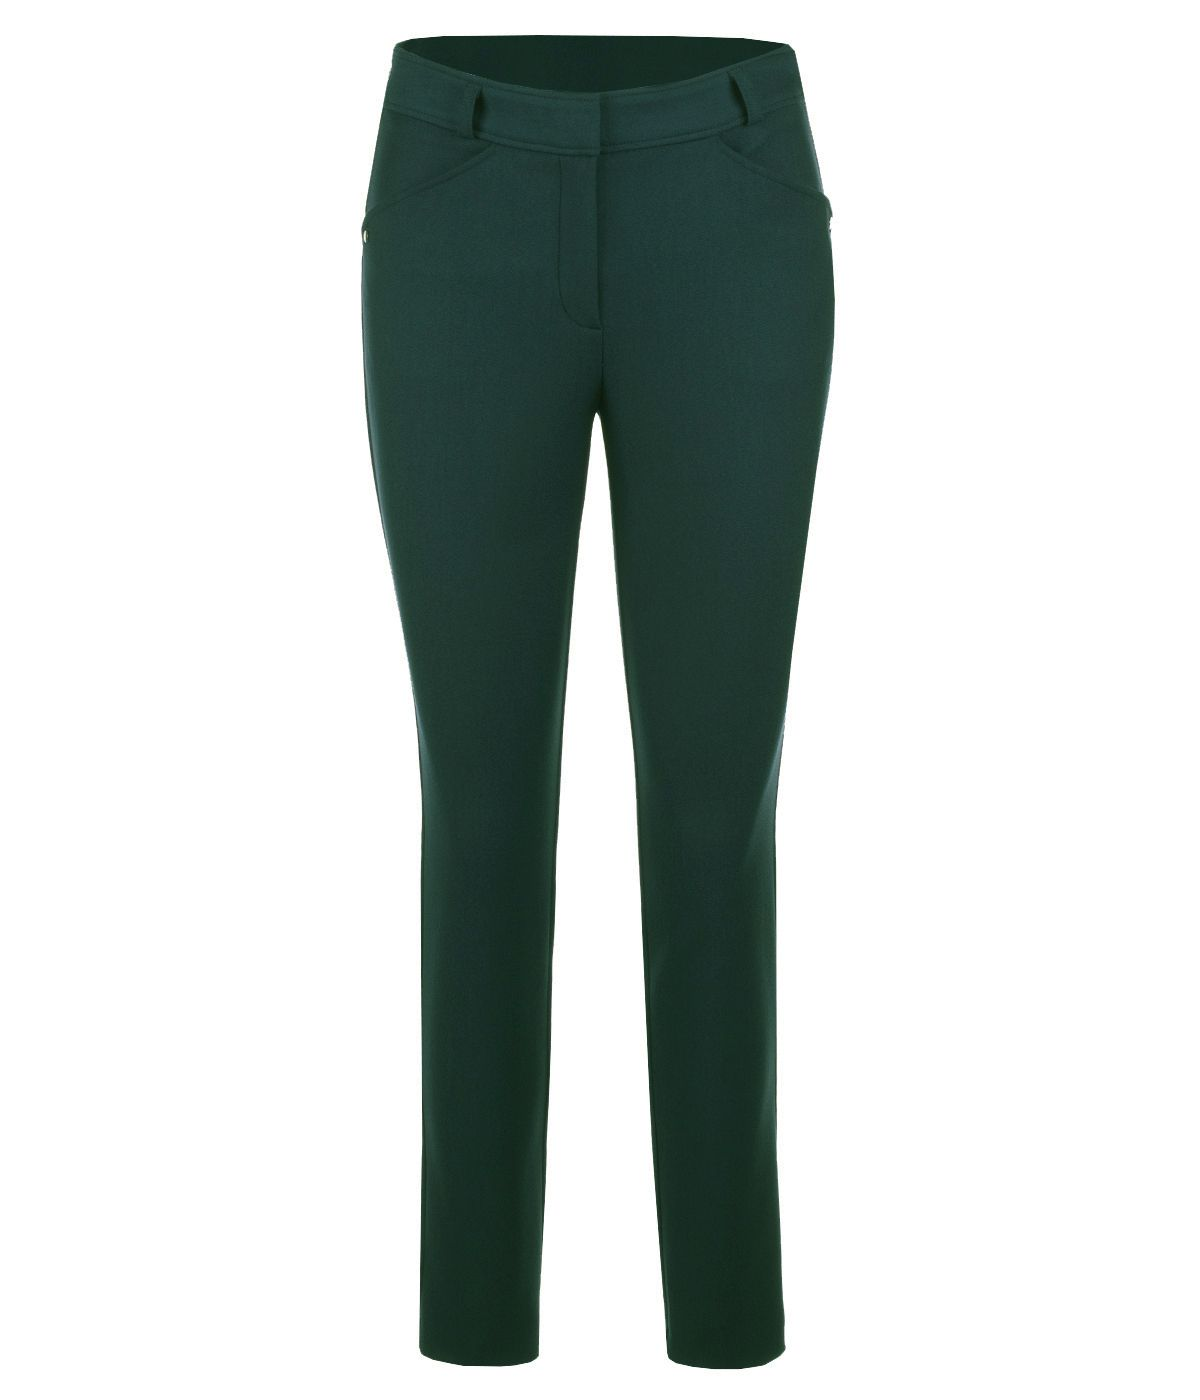 DARK GREEN SLIM FIT TROUSERS 0